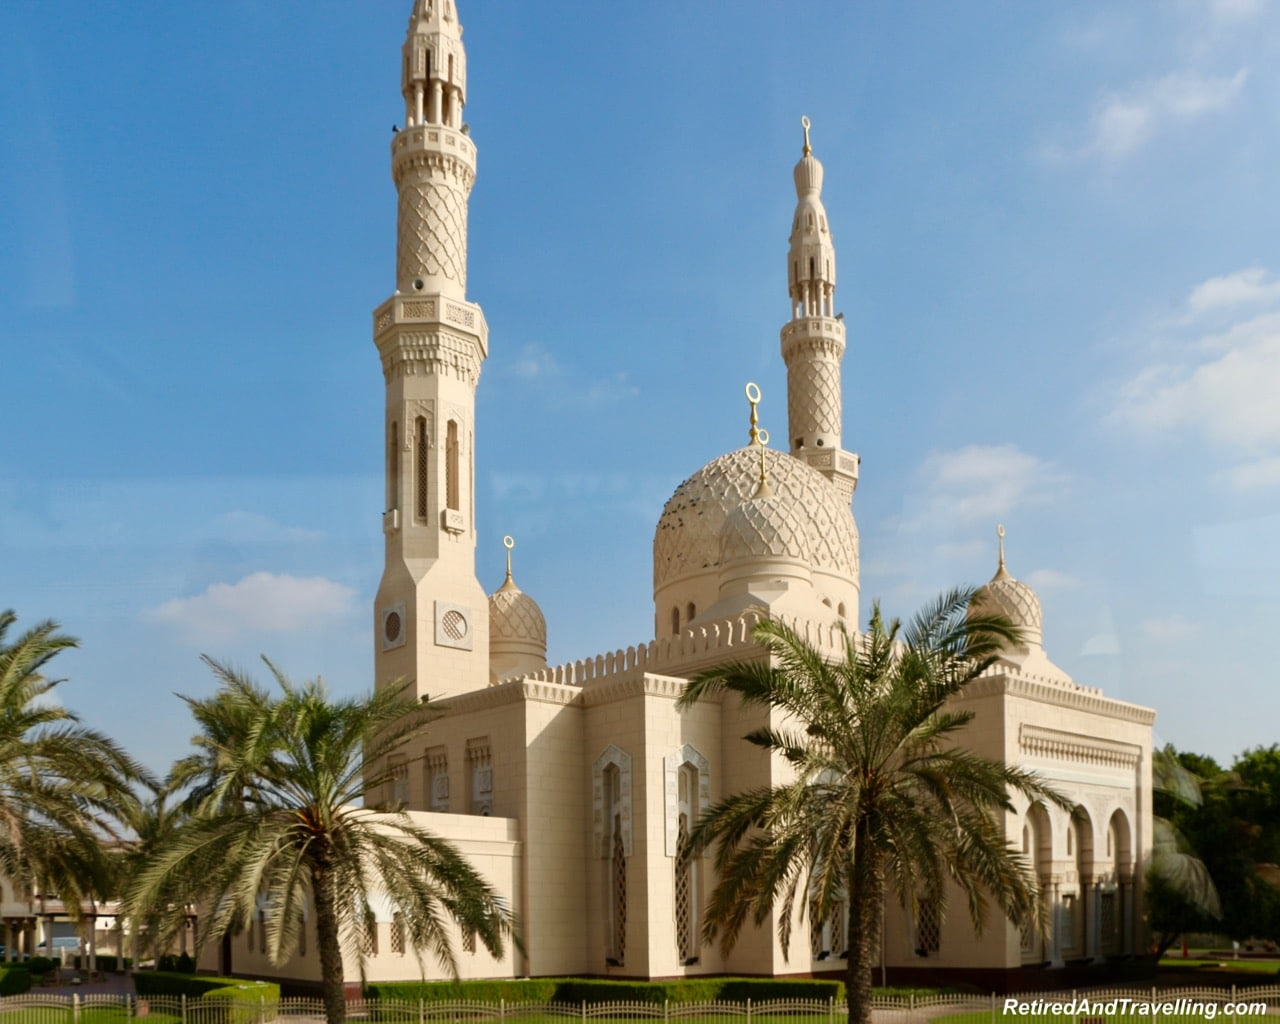 Mosque - Buidings and Architecture - Things To Do In Dubai.jpg